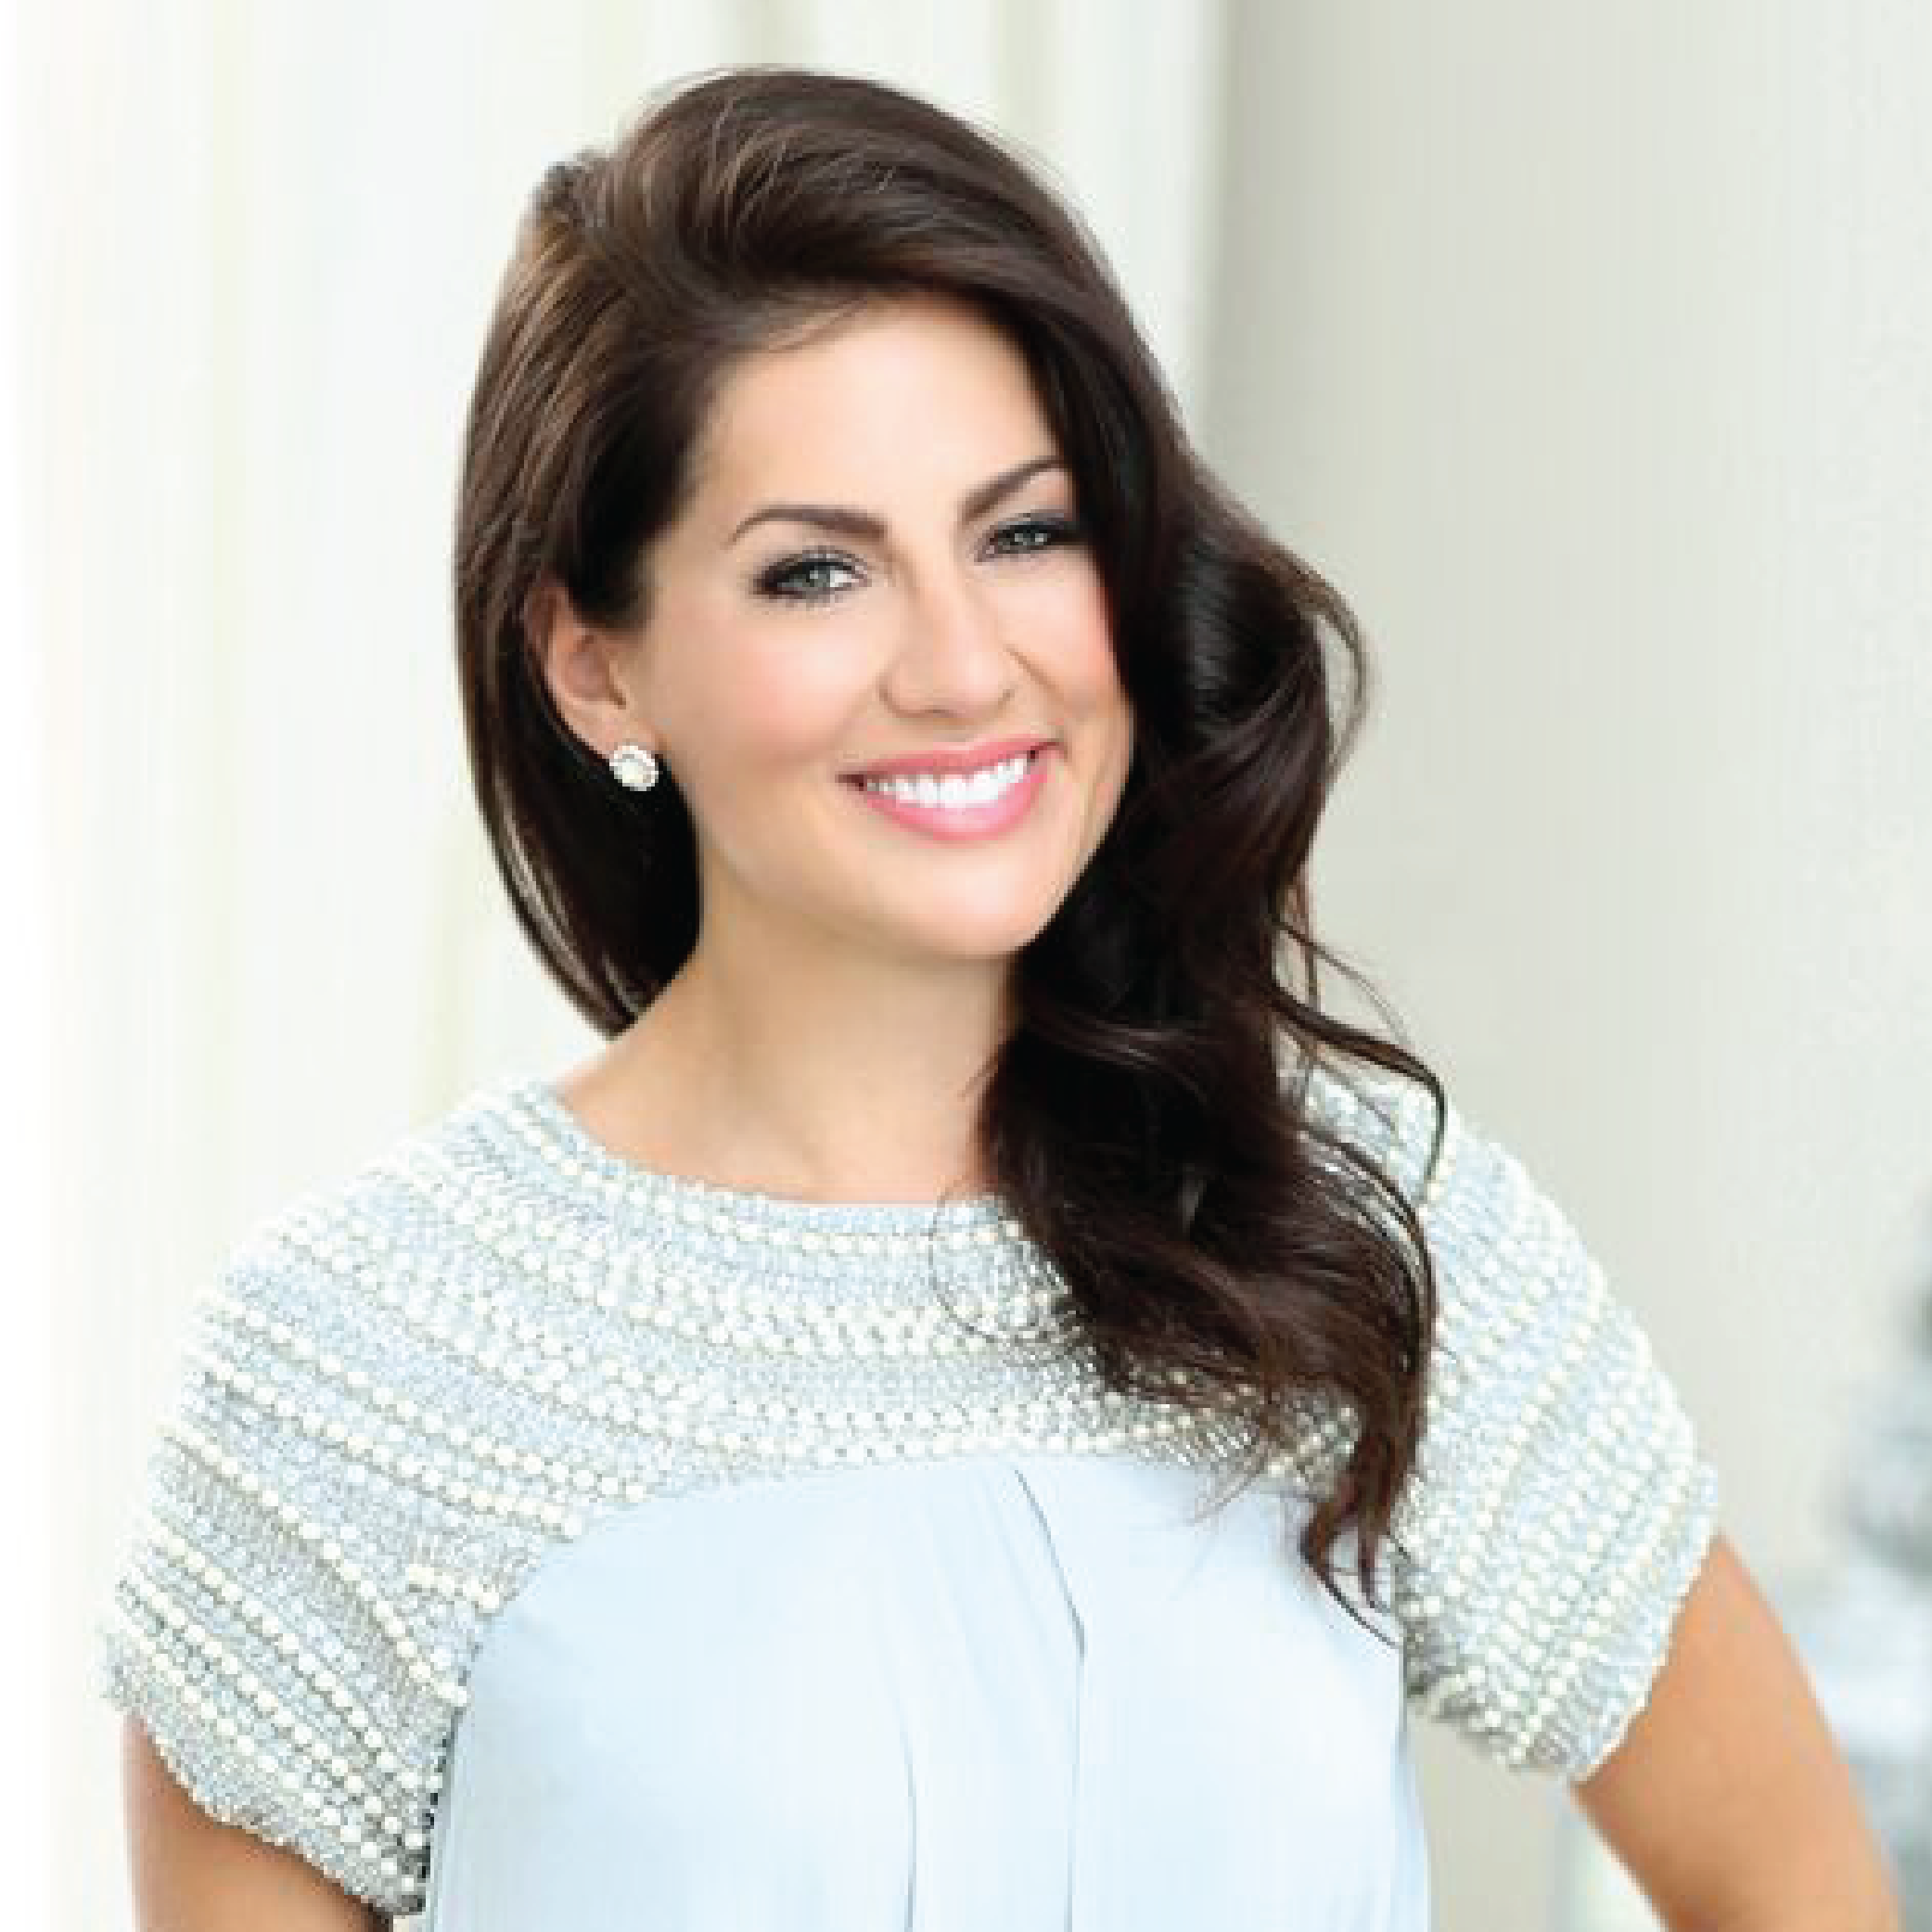 Jillian_Harris_Crop-01.png